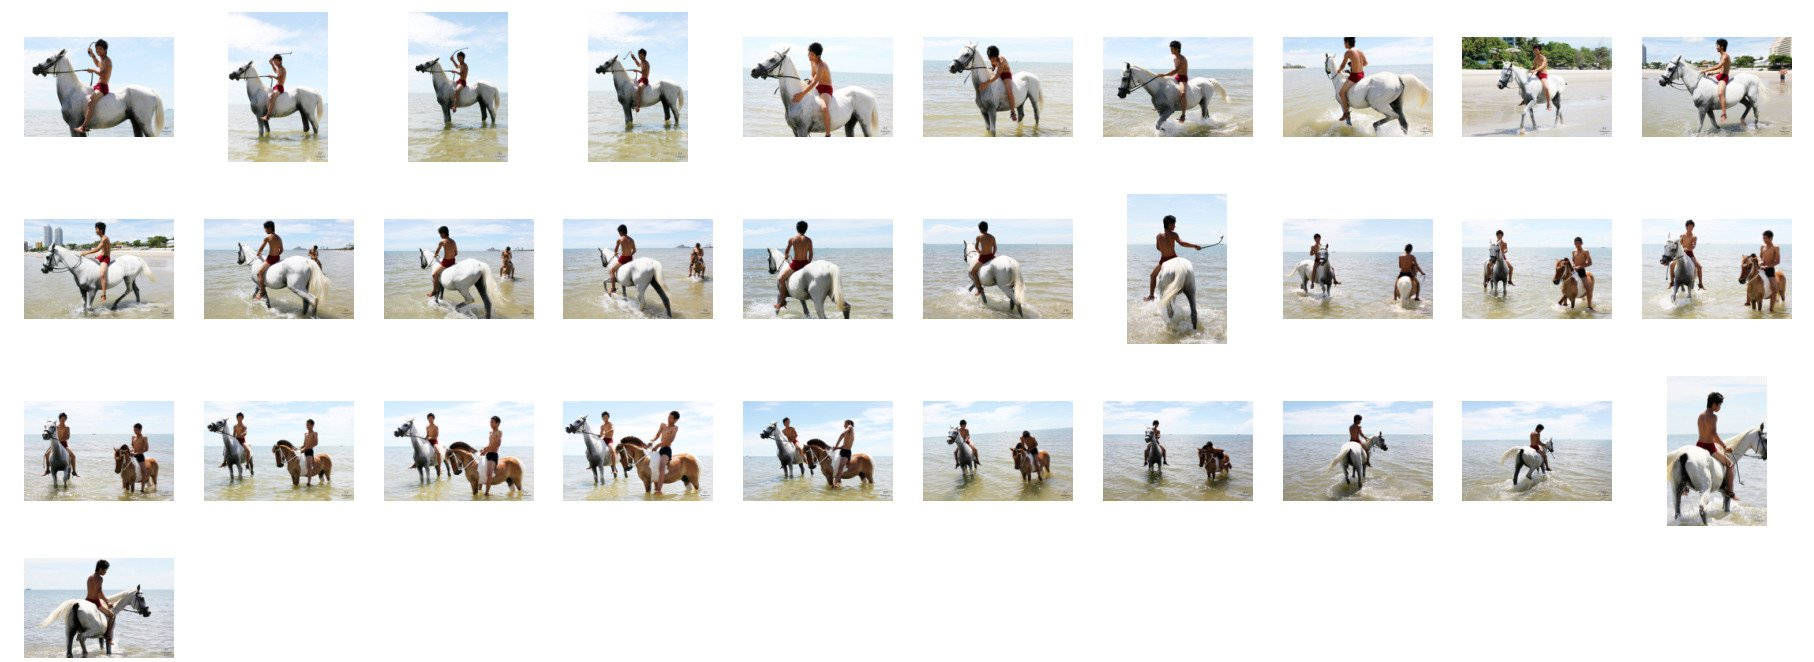 David Season 1 Riding Bareback on Arabian, Part 2 - Riding.Vision